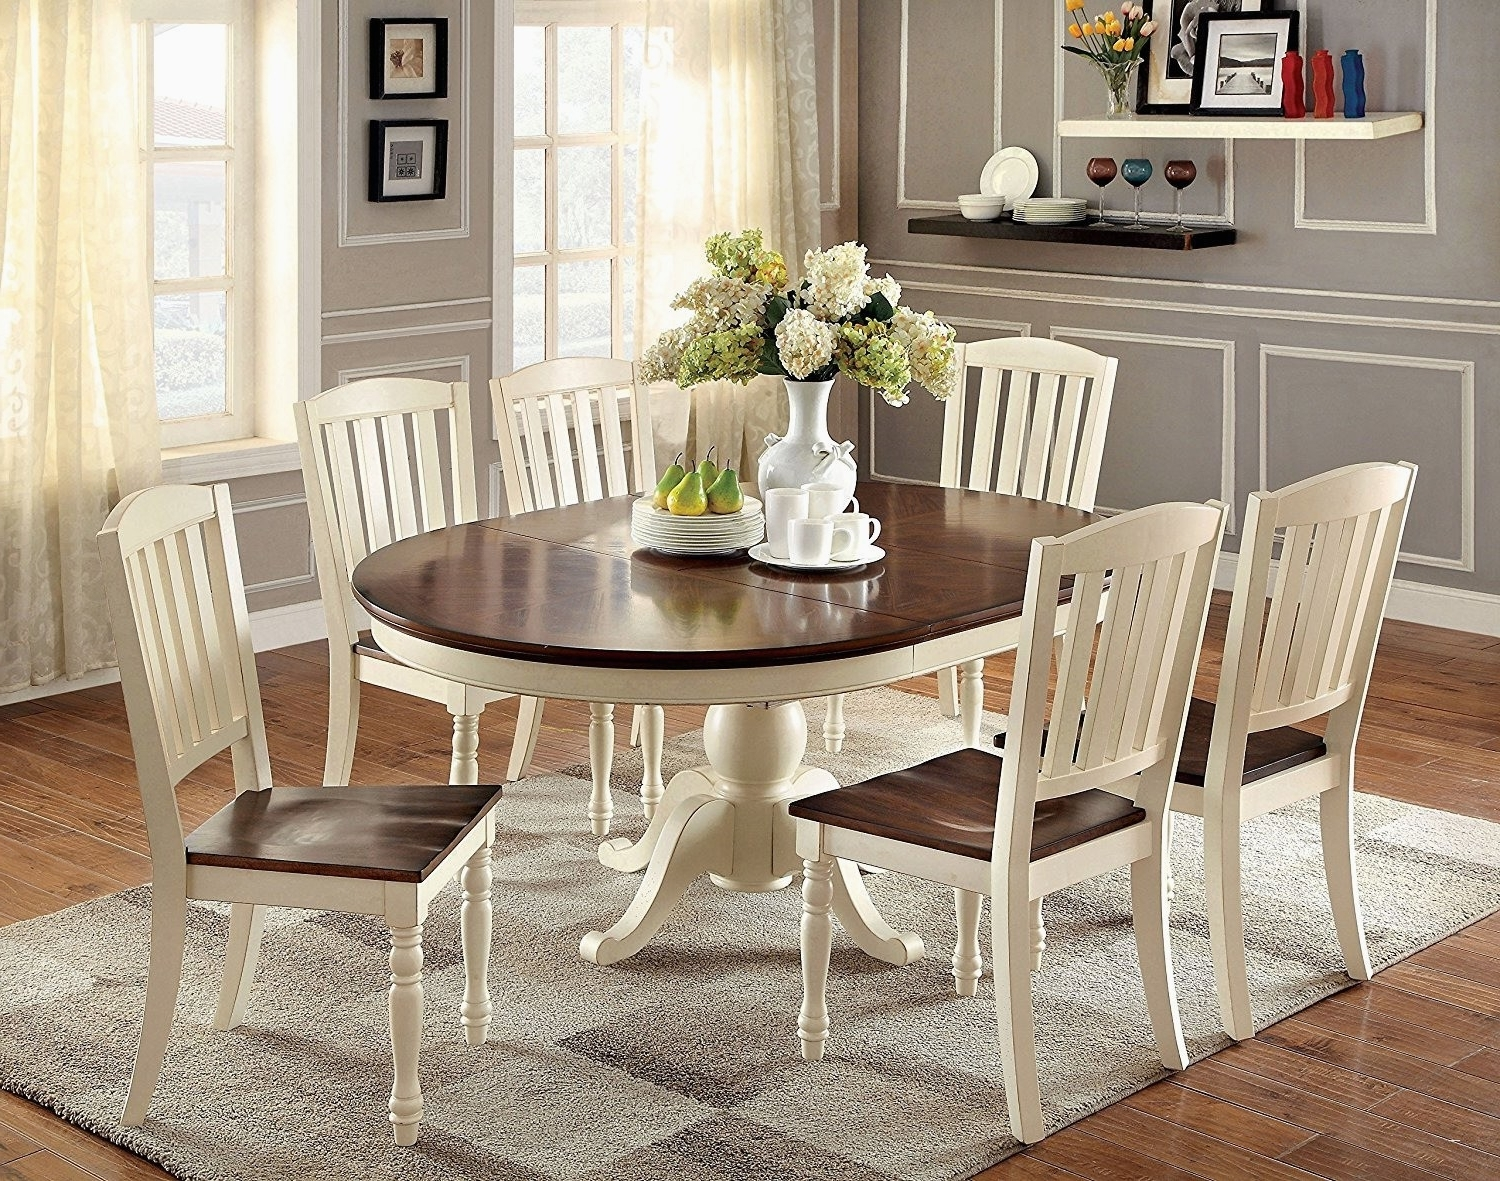 Six Chair Dining Table New Amazing 6 Chair Dining Table Set Virginia With 2017 6 Seater Round Dining Tables (View 21 of 25)